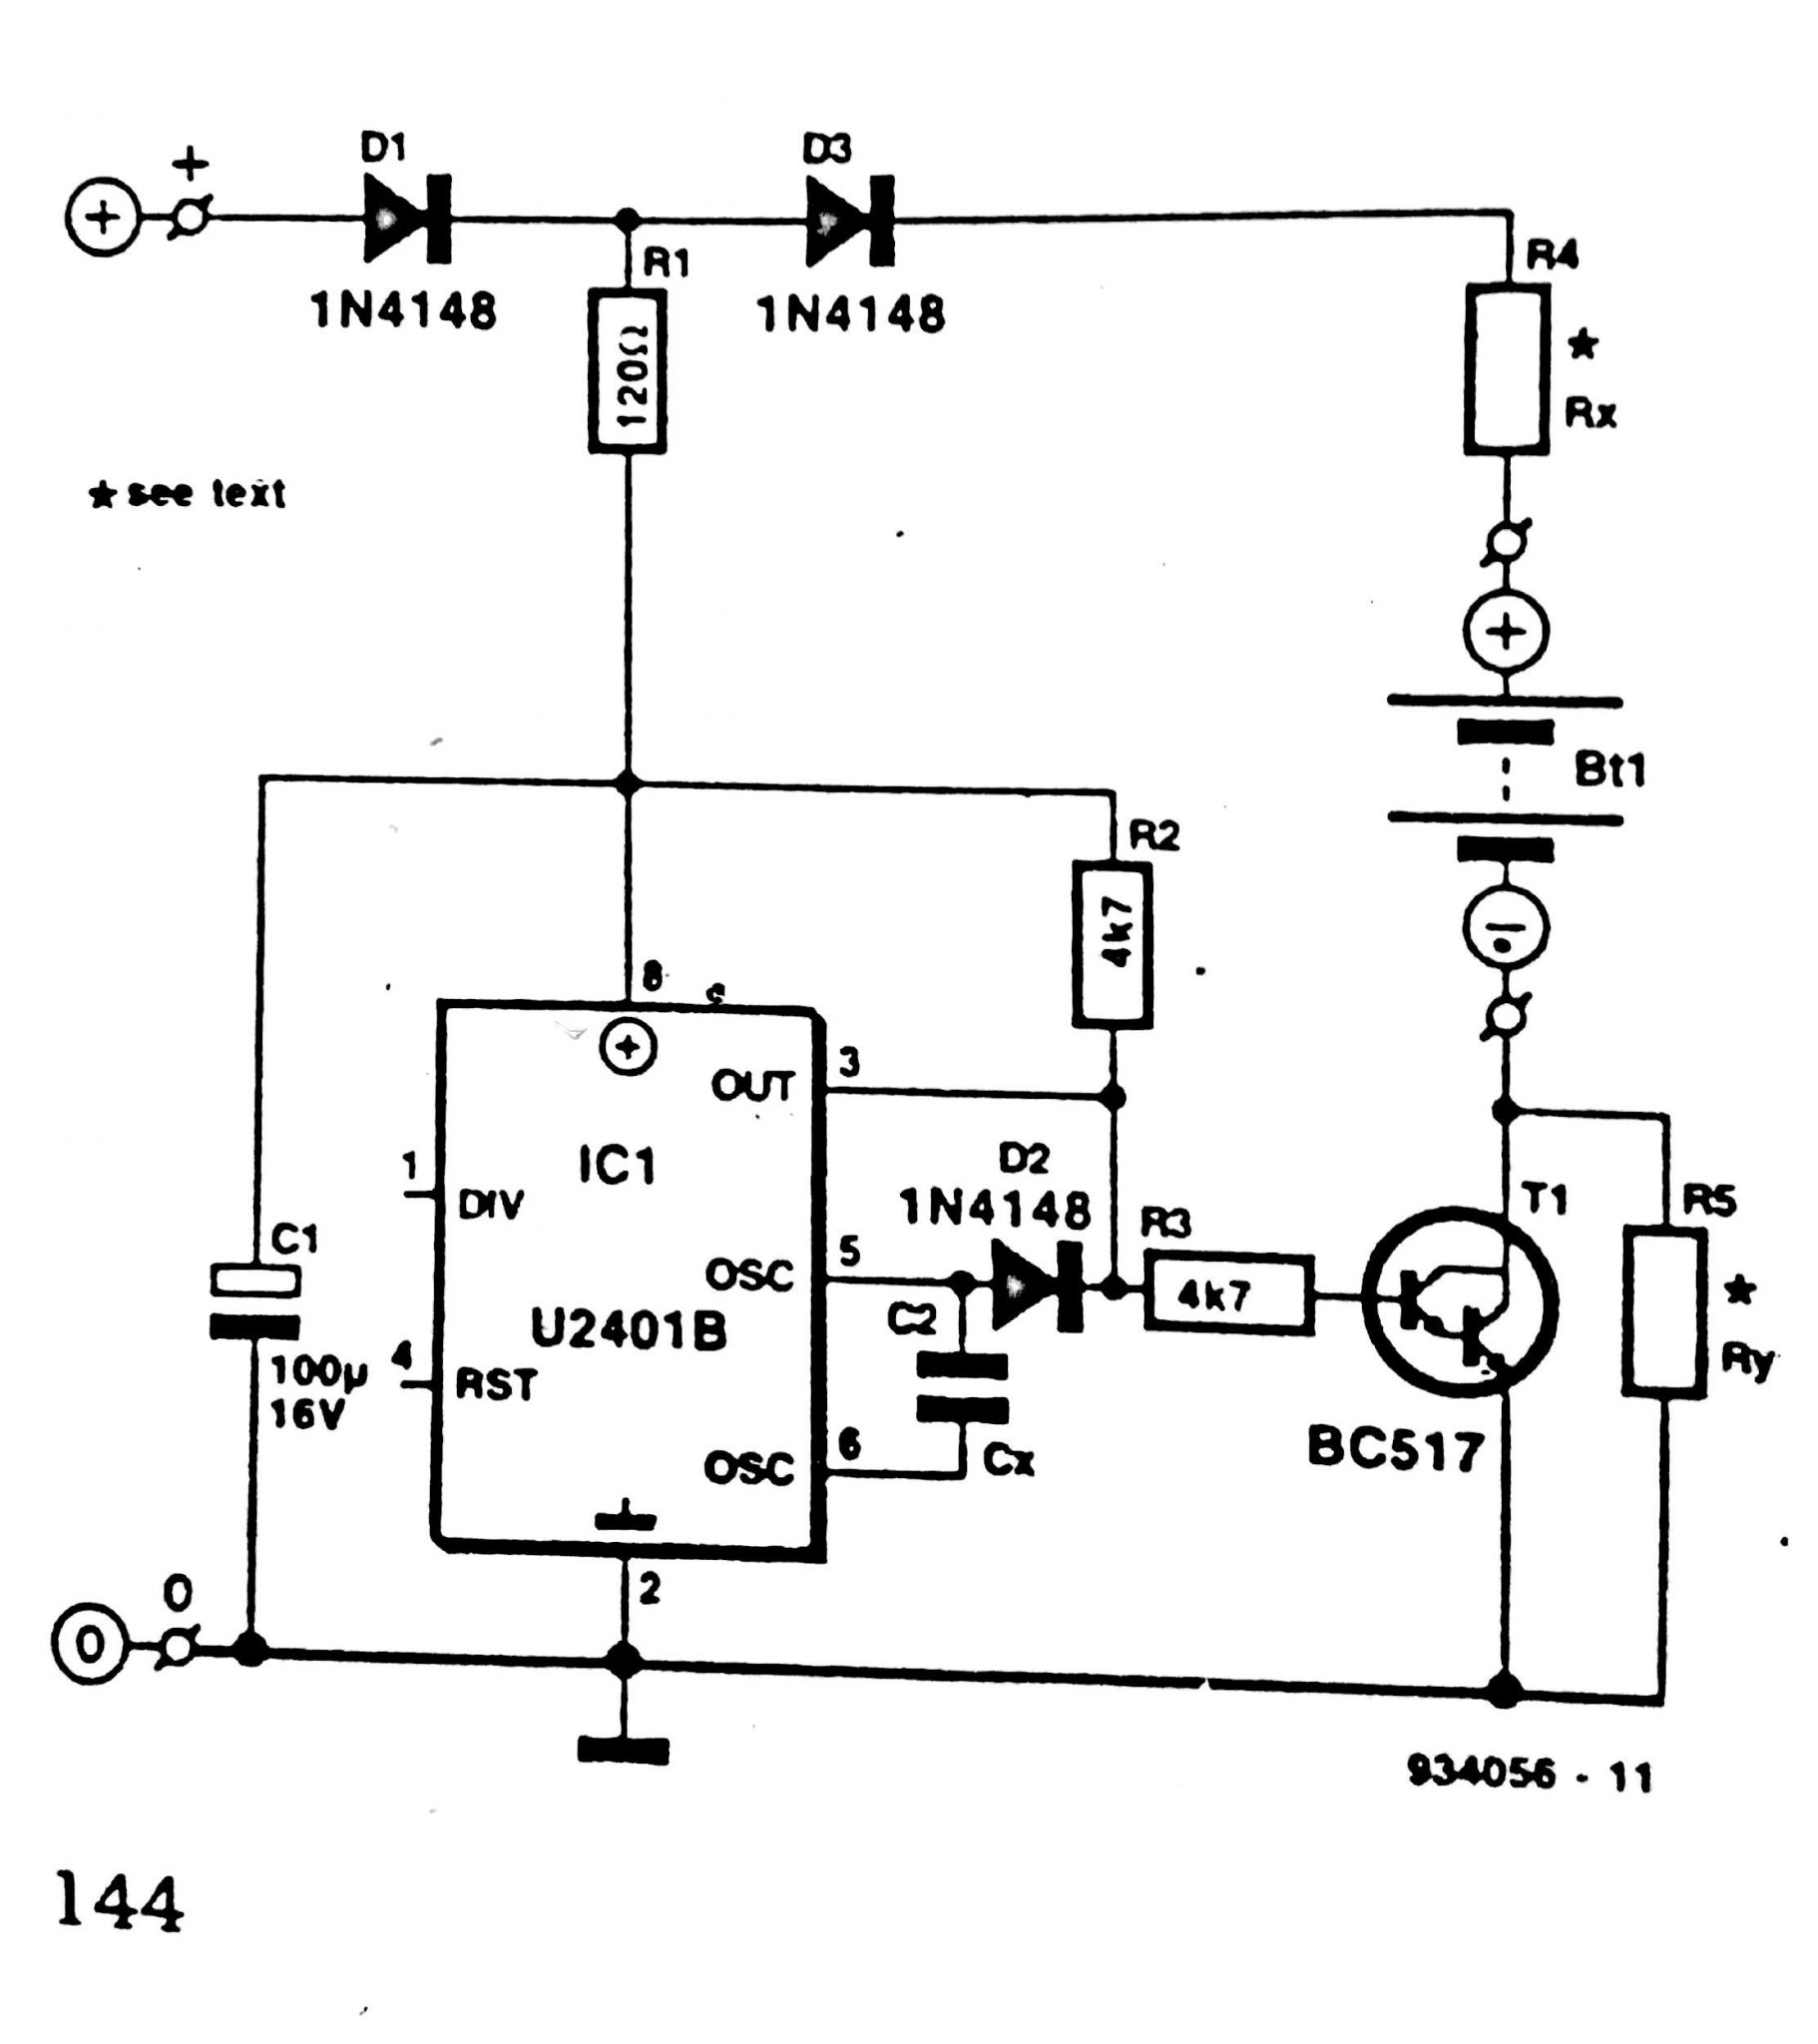 nicd button cell charger circuit diagram rh circuit diagramz com circuit diagram cell symbol circuit diagram cell charger